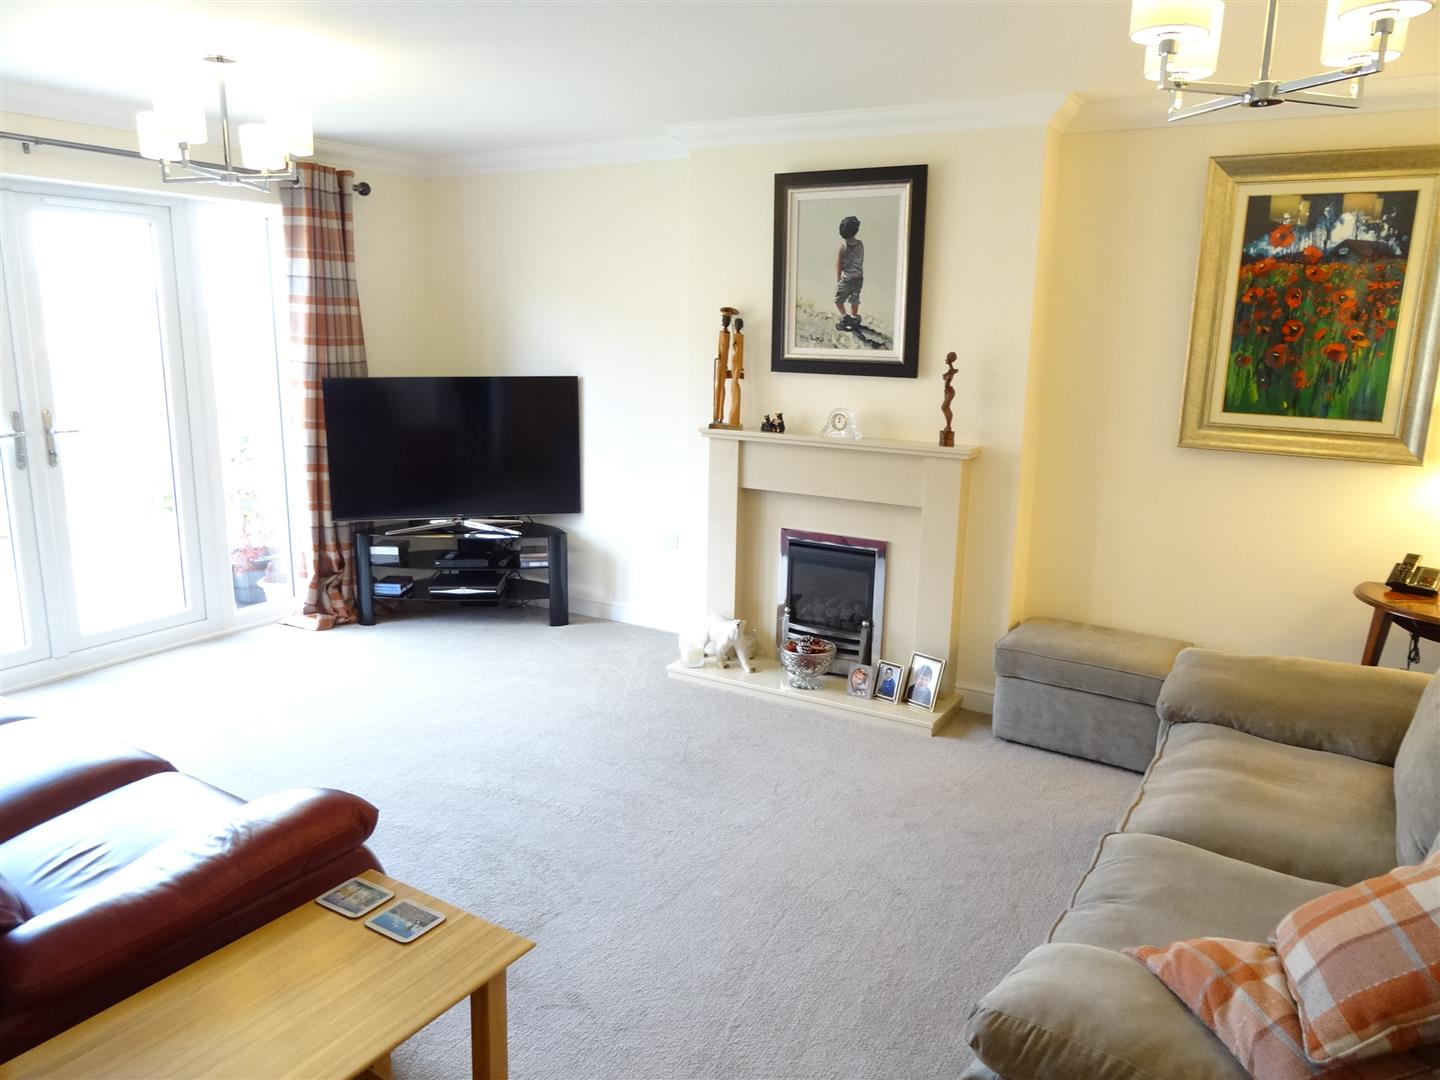 4 Bedrooms House - Detached For Sale 13 Ascot Way Carlisle